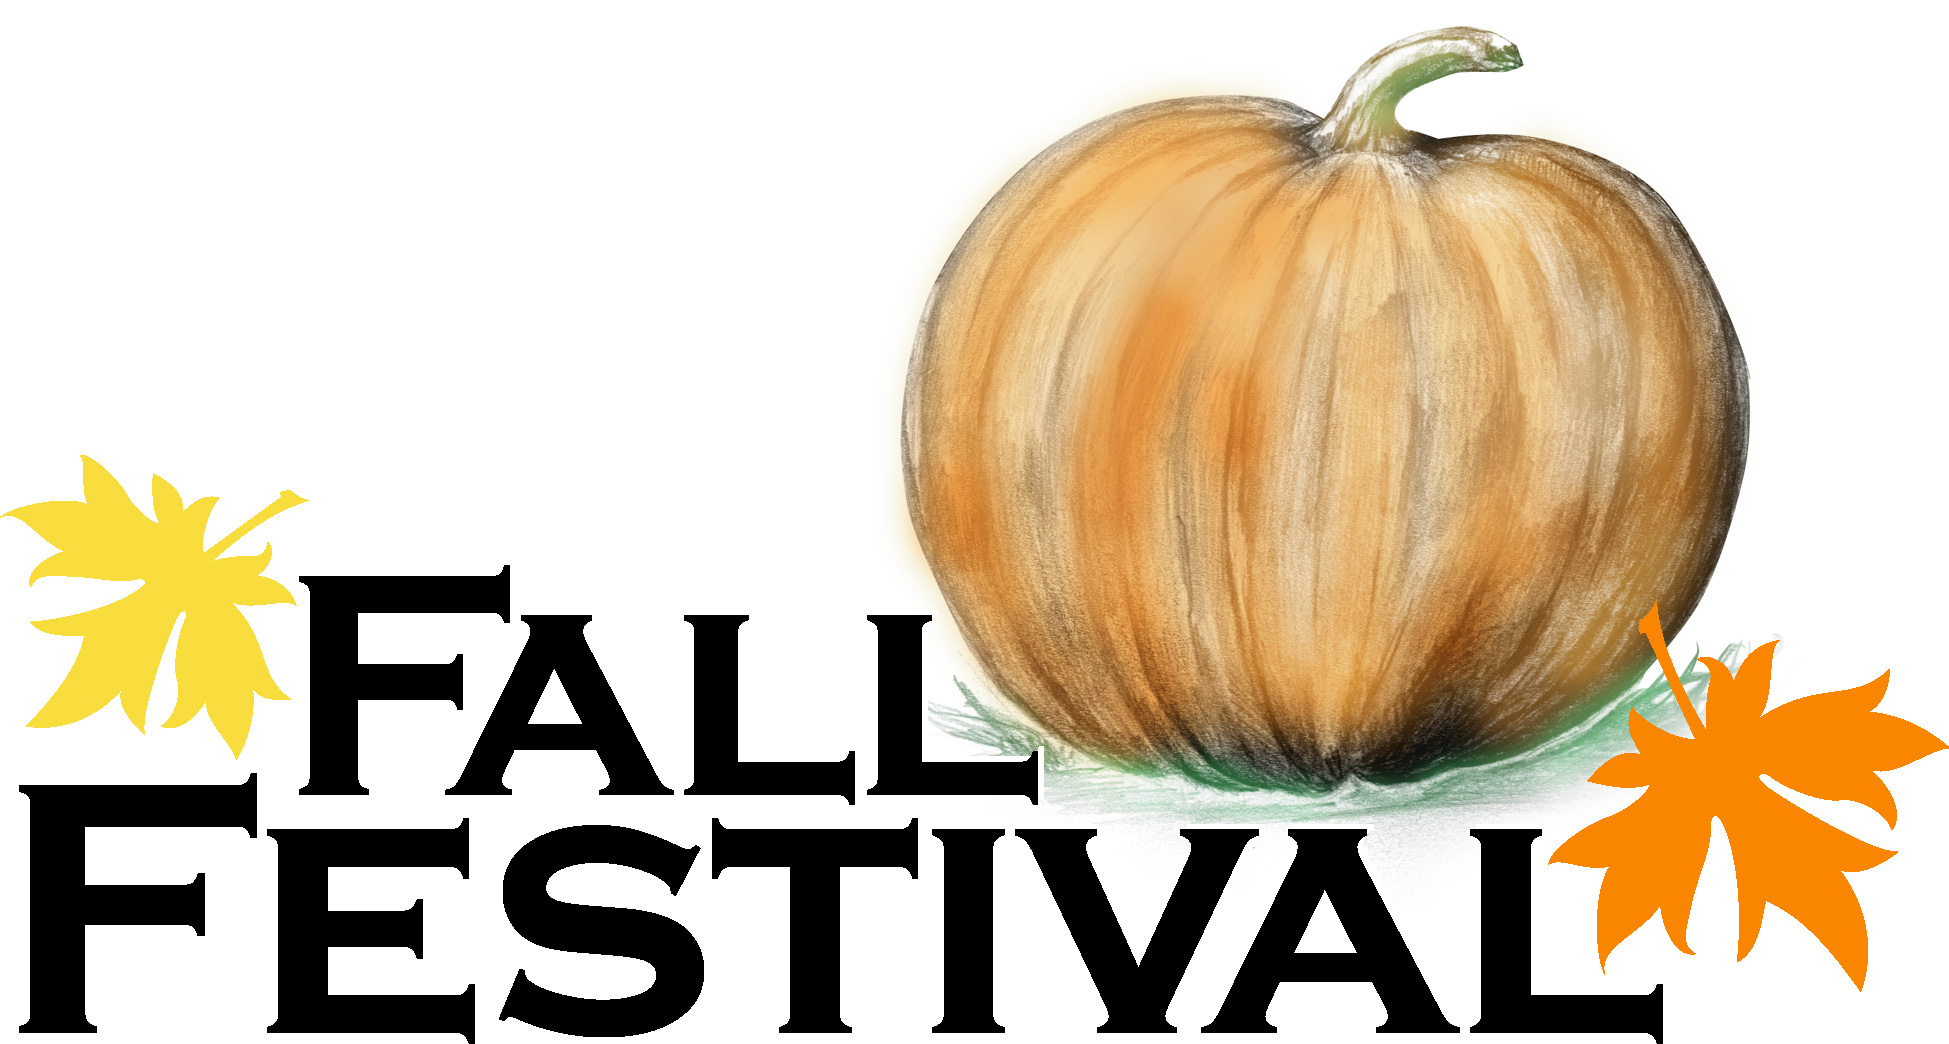 Facebook For Fall Clipart